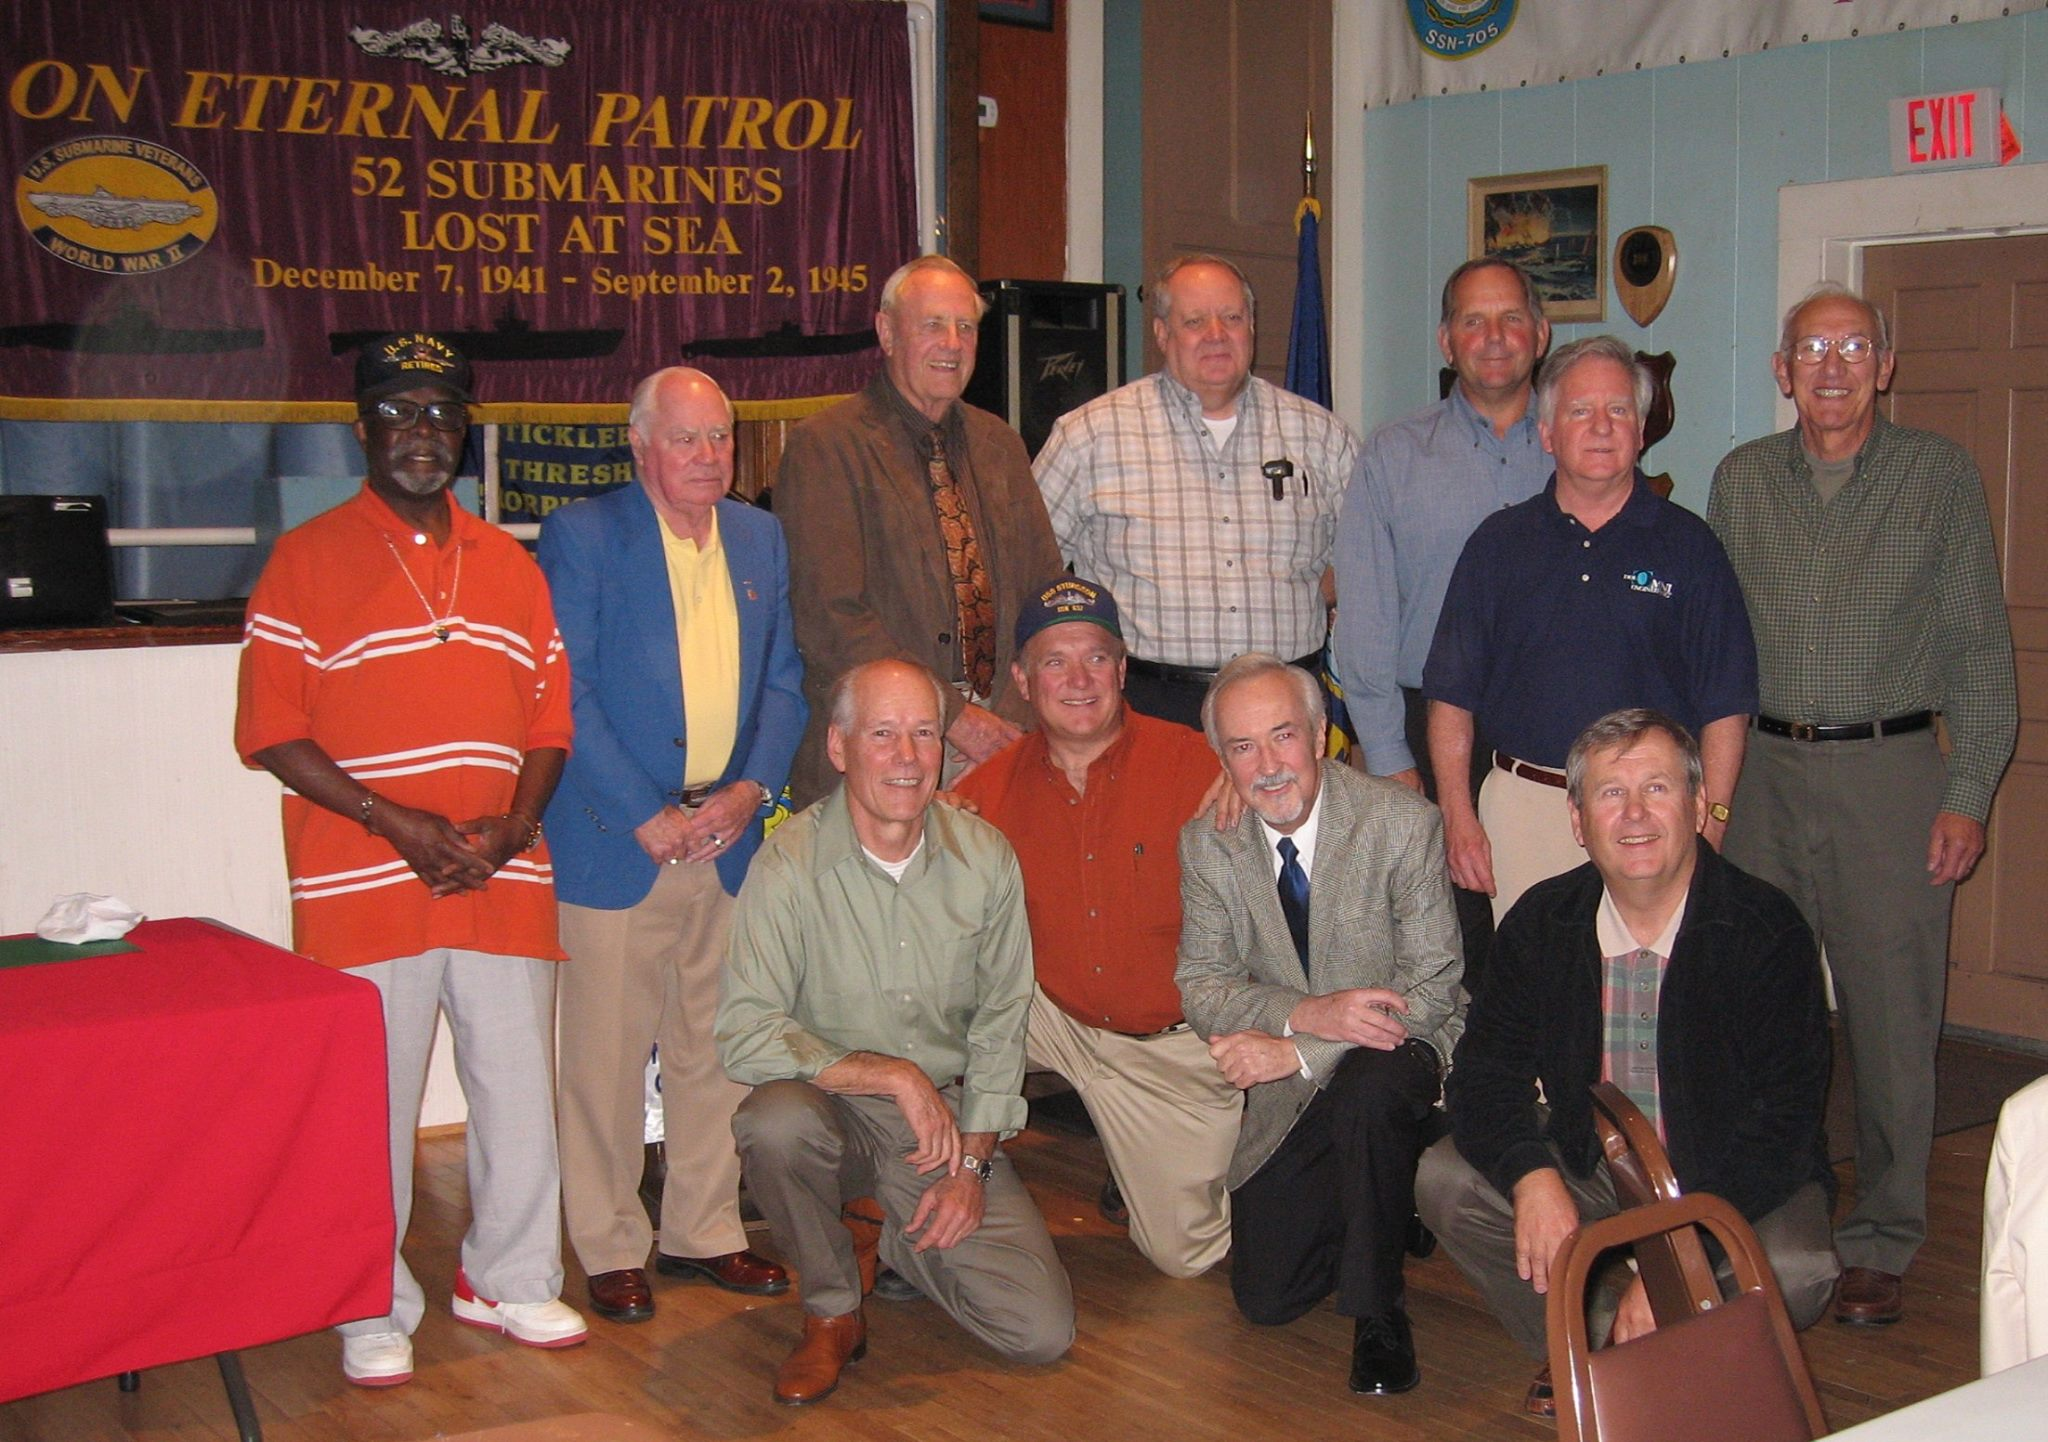 This photo was taken at the NSL Luncheon at the Subvets in October 2008 when the book came out. L to R (back row) Head Steward Emmanuel Howard, COB Bill Welsh, Capt. Bohannan, Ken Schack, Mike Reynolds, Thom Keaney, Bob Gustafson, (Front Row)...Bill Drake, Dennis Cloutier, Gannon McHale, Dan Ottinger